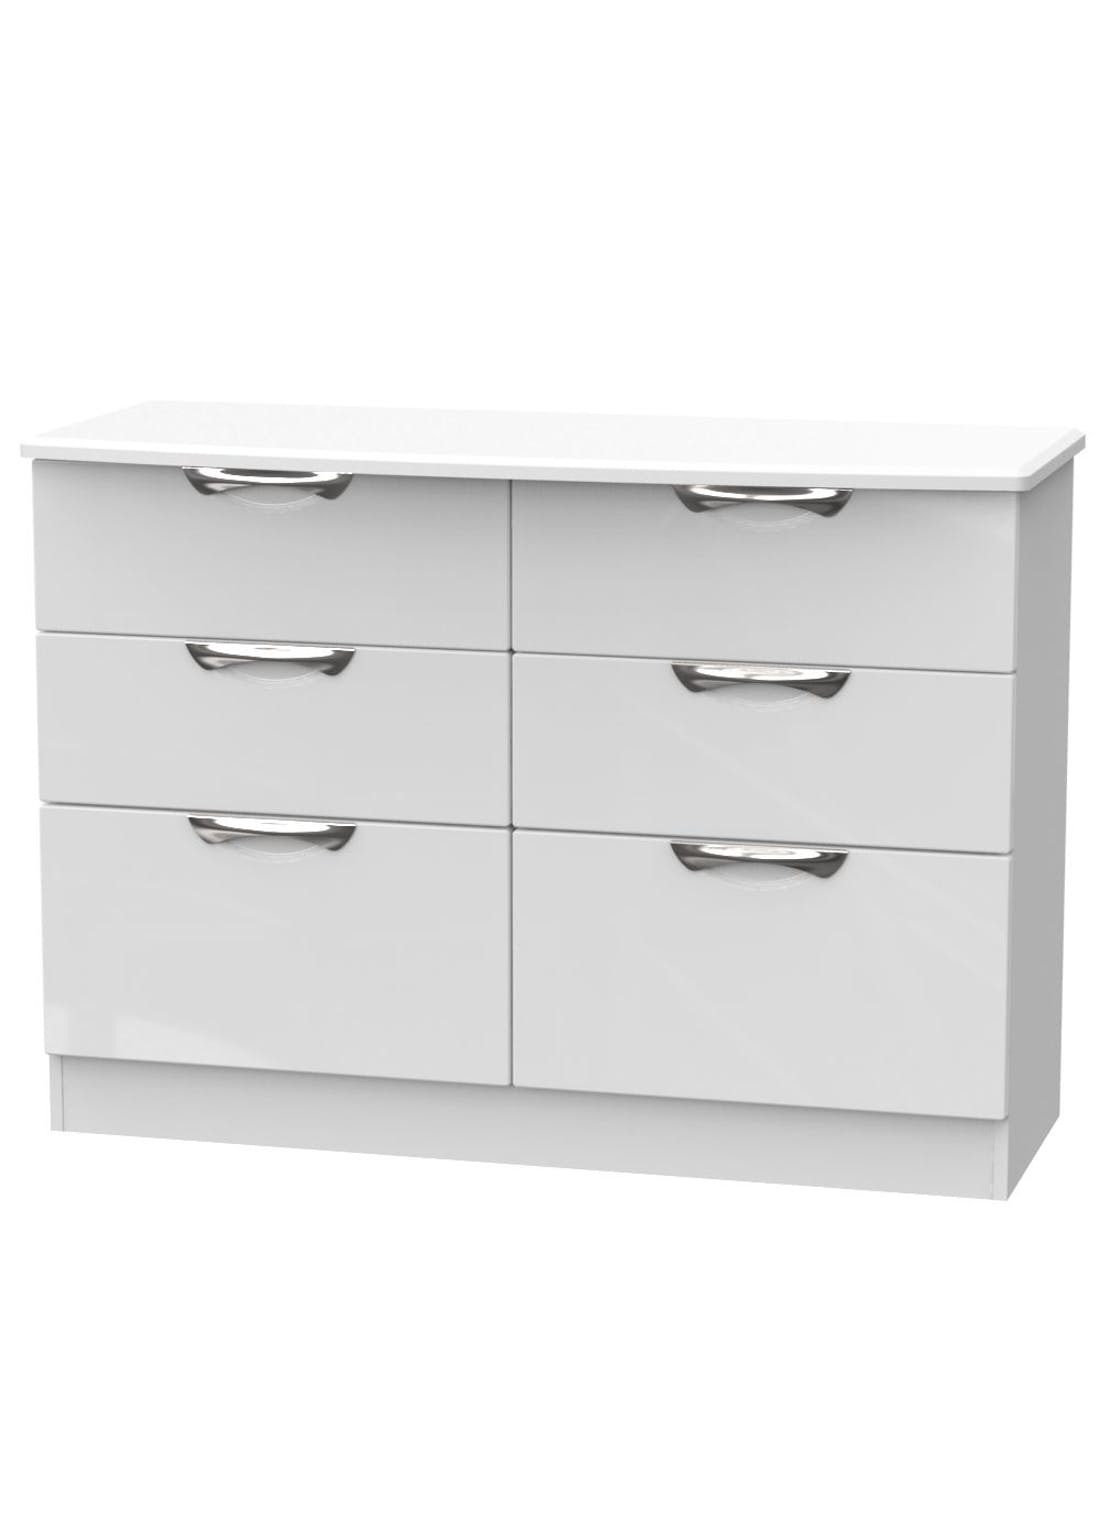 Swift Bordeaux 6 Drawer Wide Chest (78.8cm x 112cm x 41.5cm)